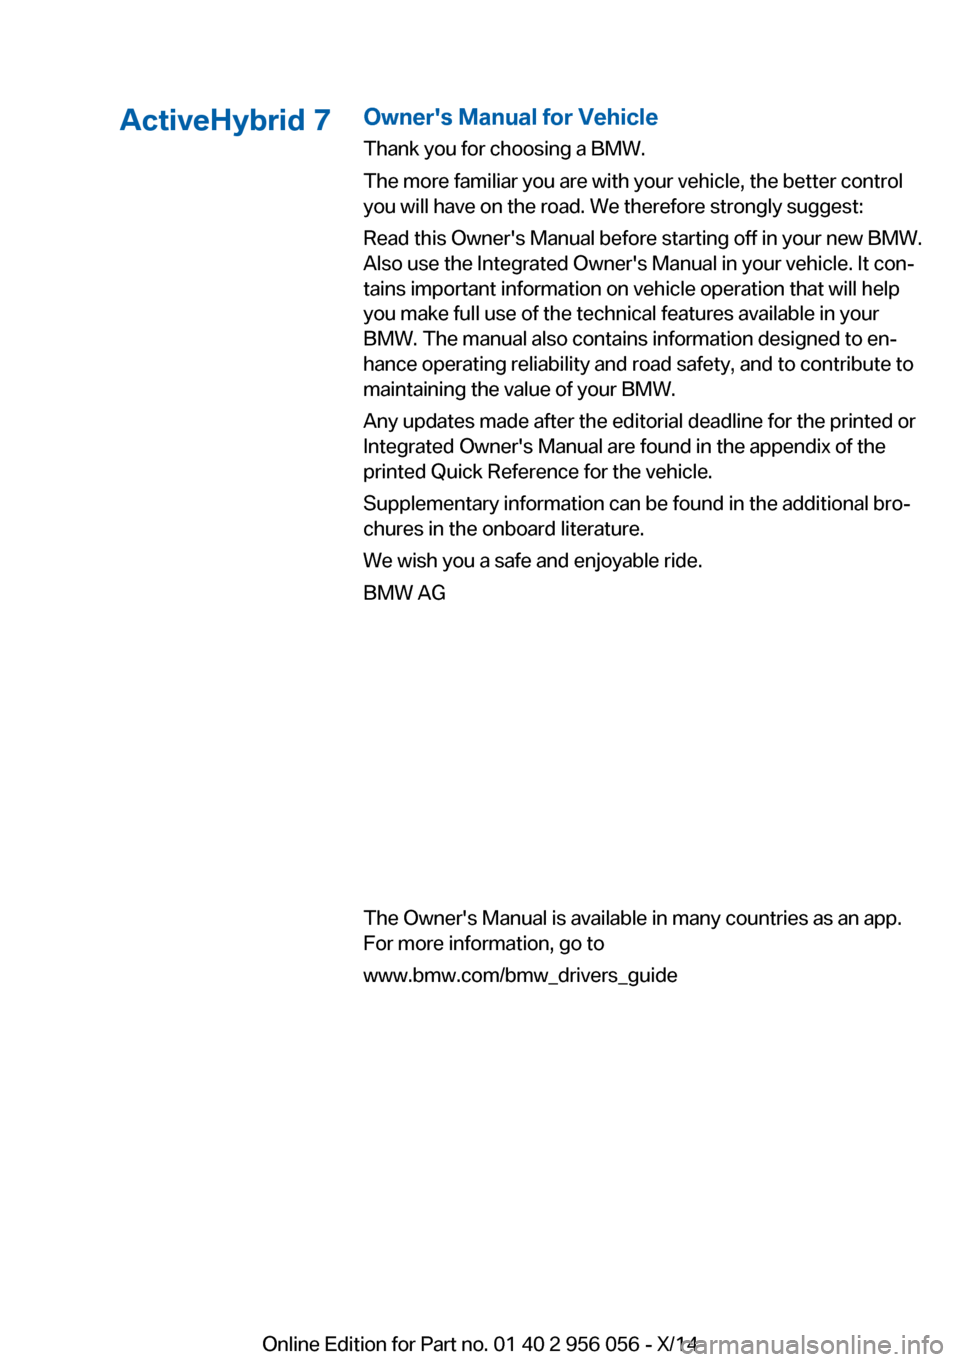 BMW ACTIVE HYBRID 7 2014 F01H Owners Manual, Page 3